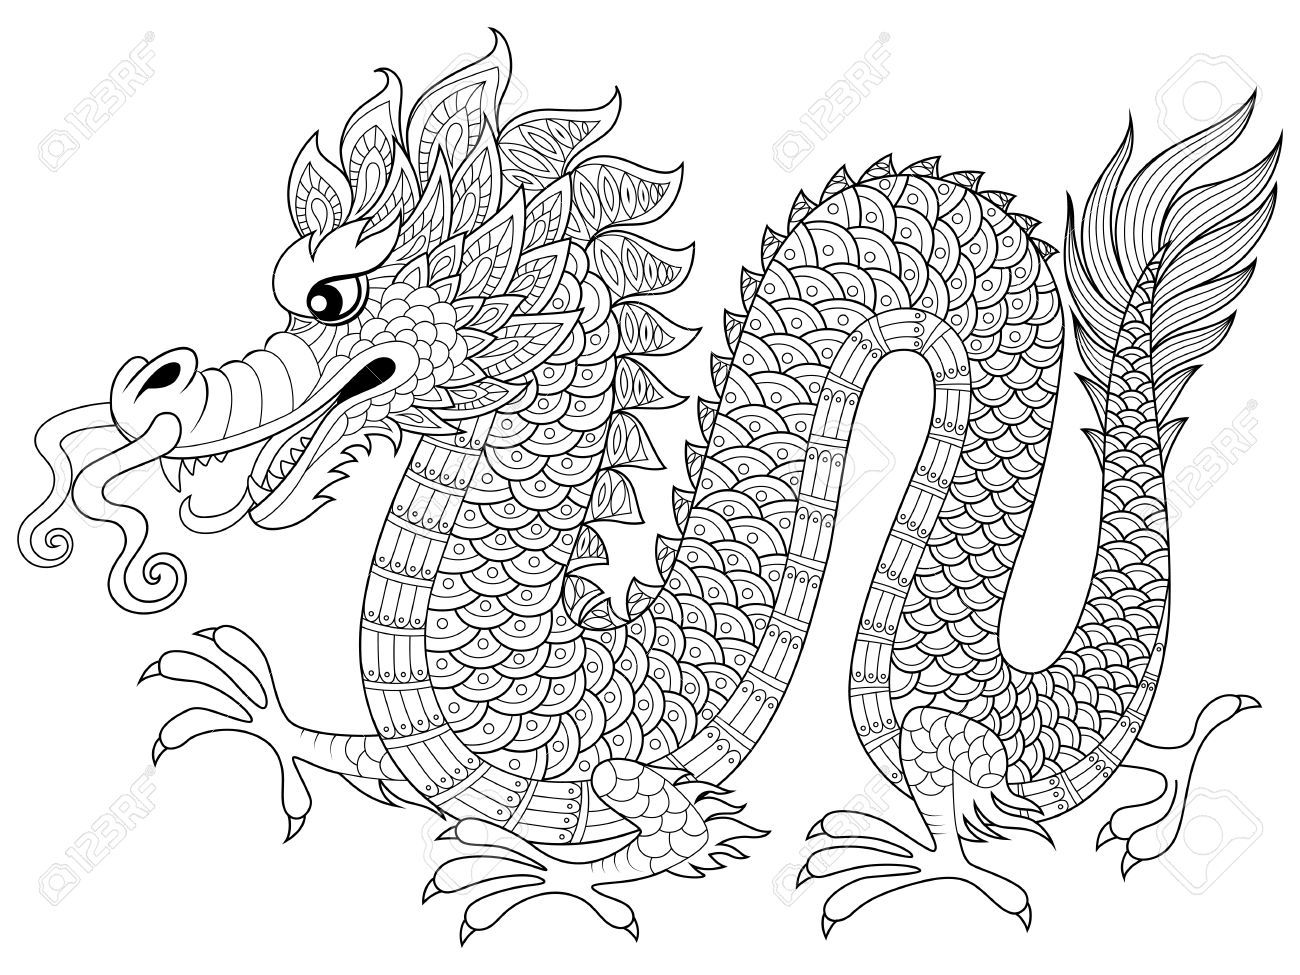 Chinese Dragon In Zentangle Style Adult Antistress Coloring Page Black And White Hand Drawn Doodle For Book